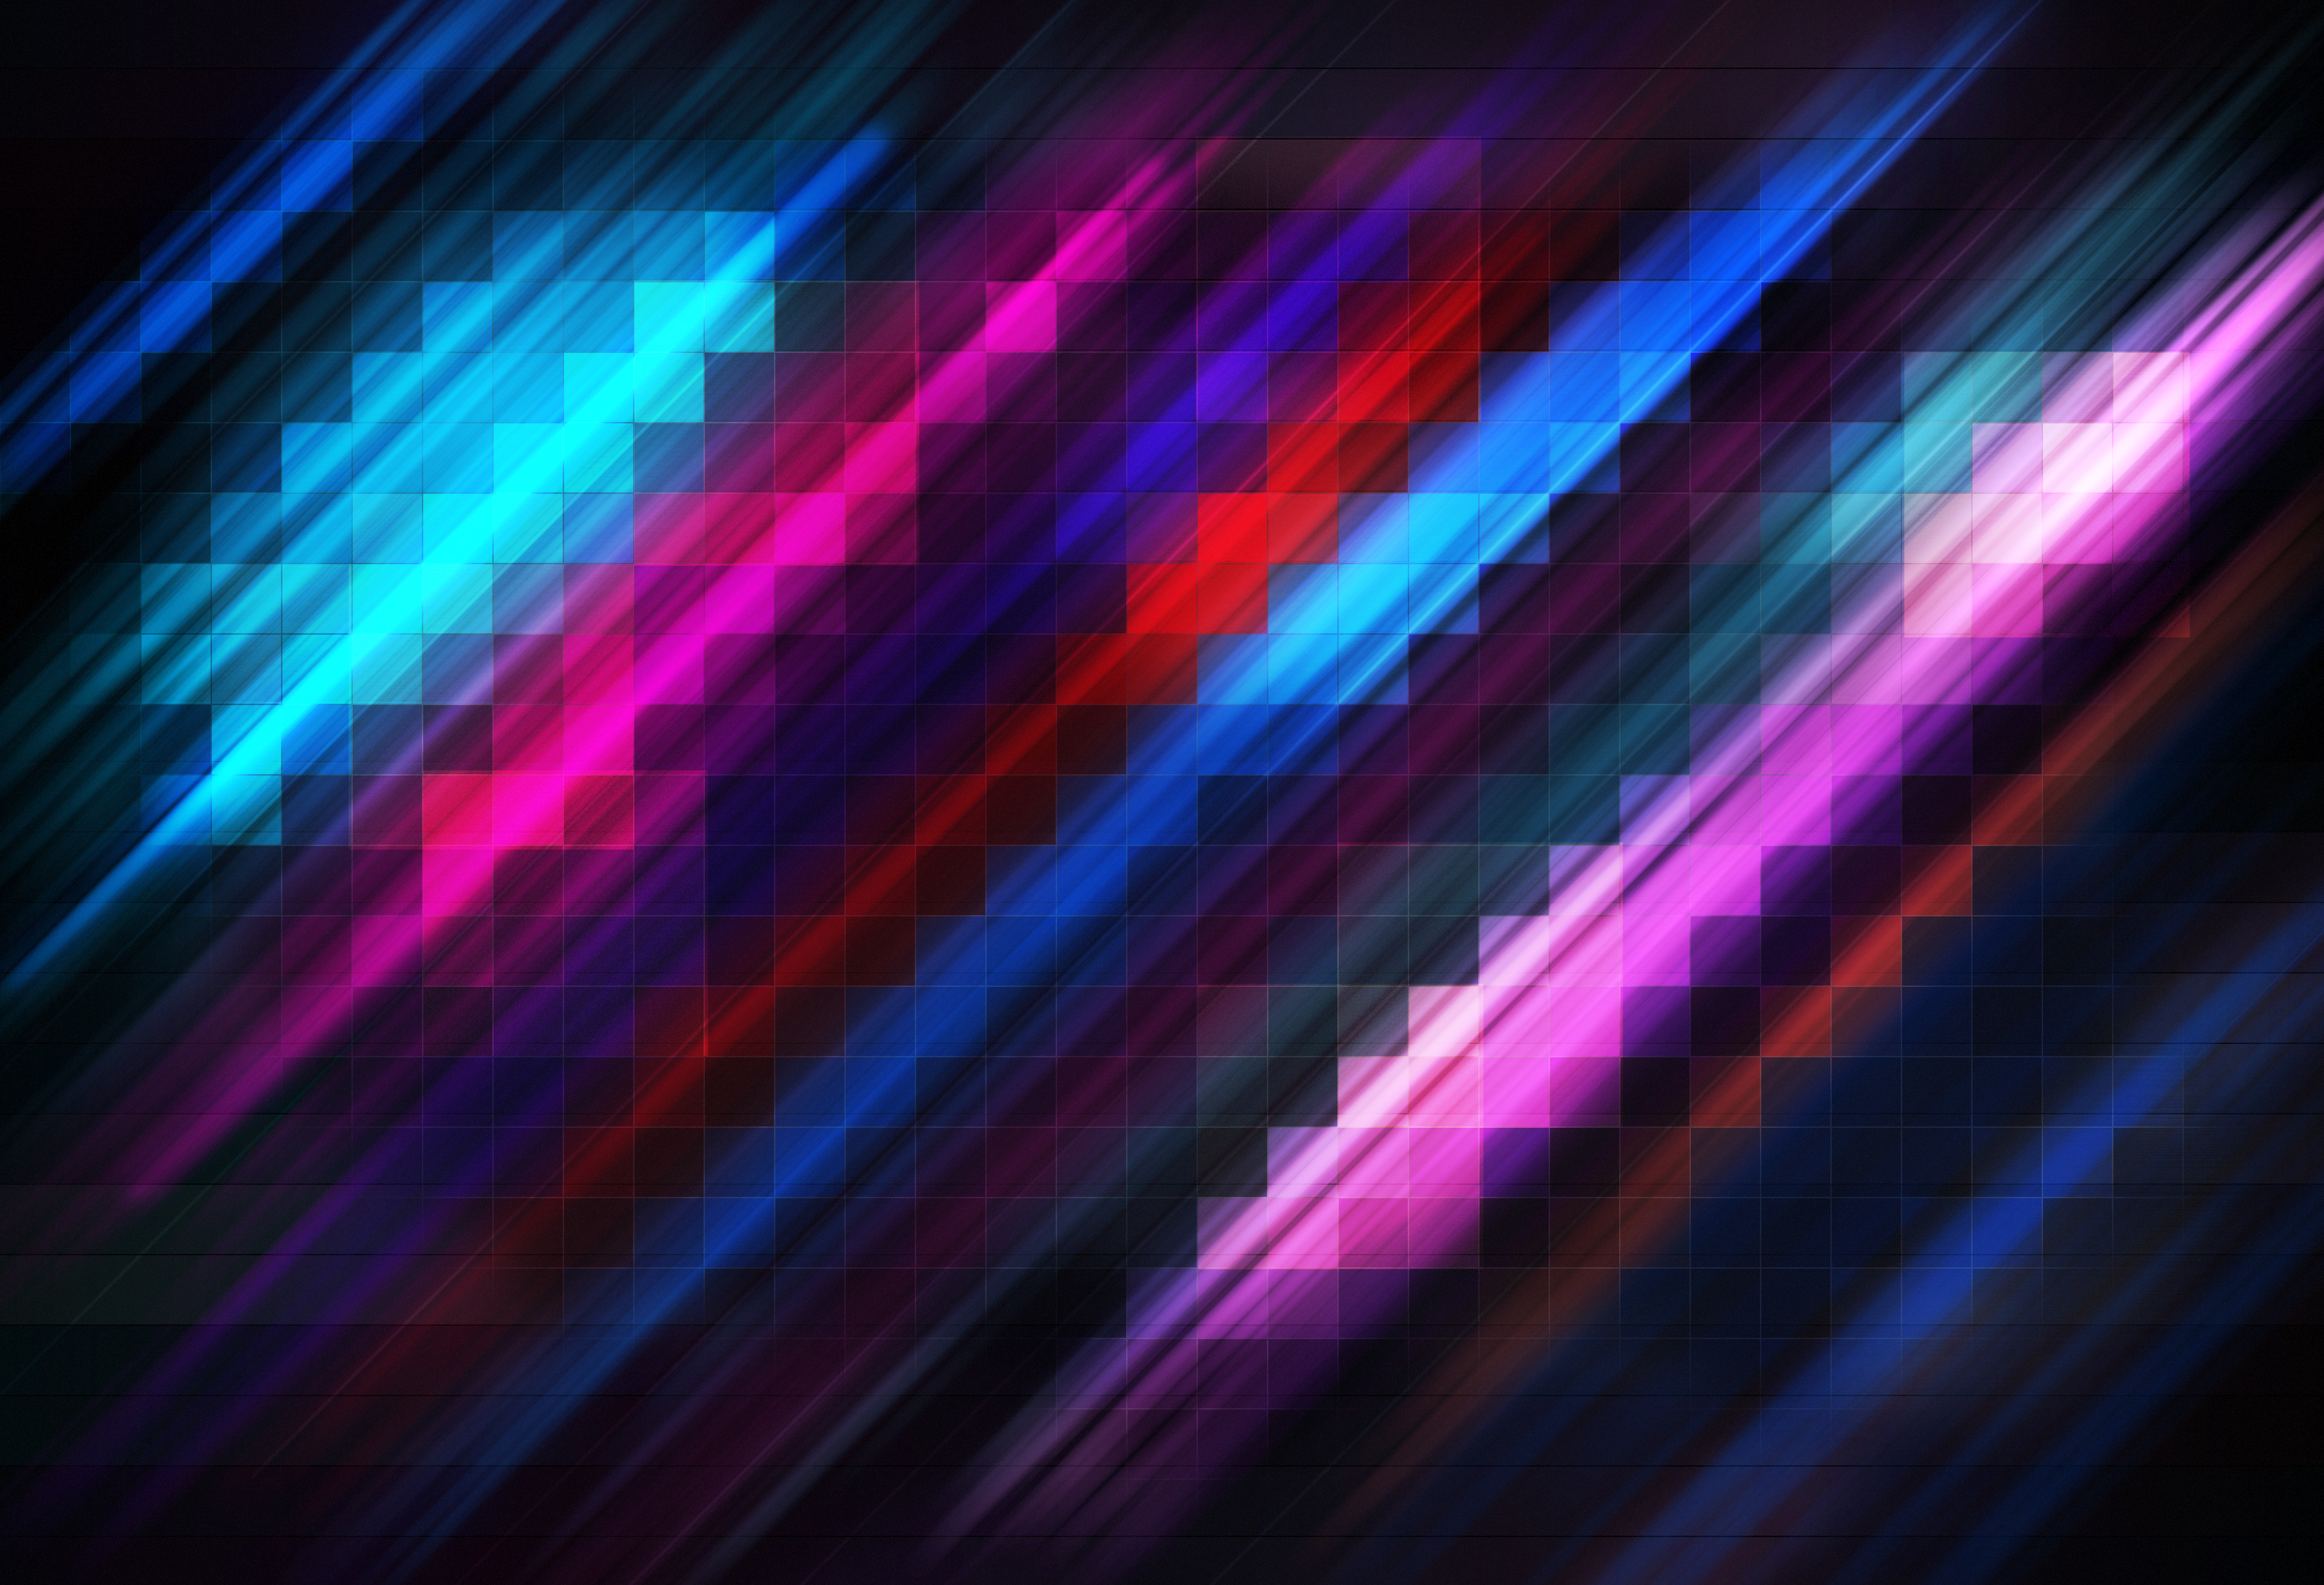 grid abstract colorful 4k, hd abstract, 4k wallpapers, images